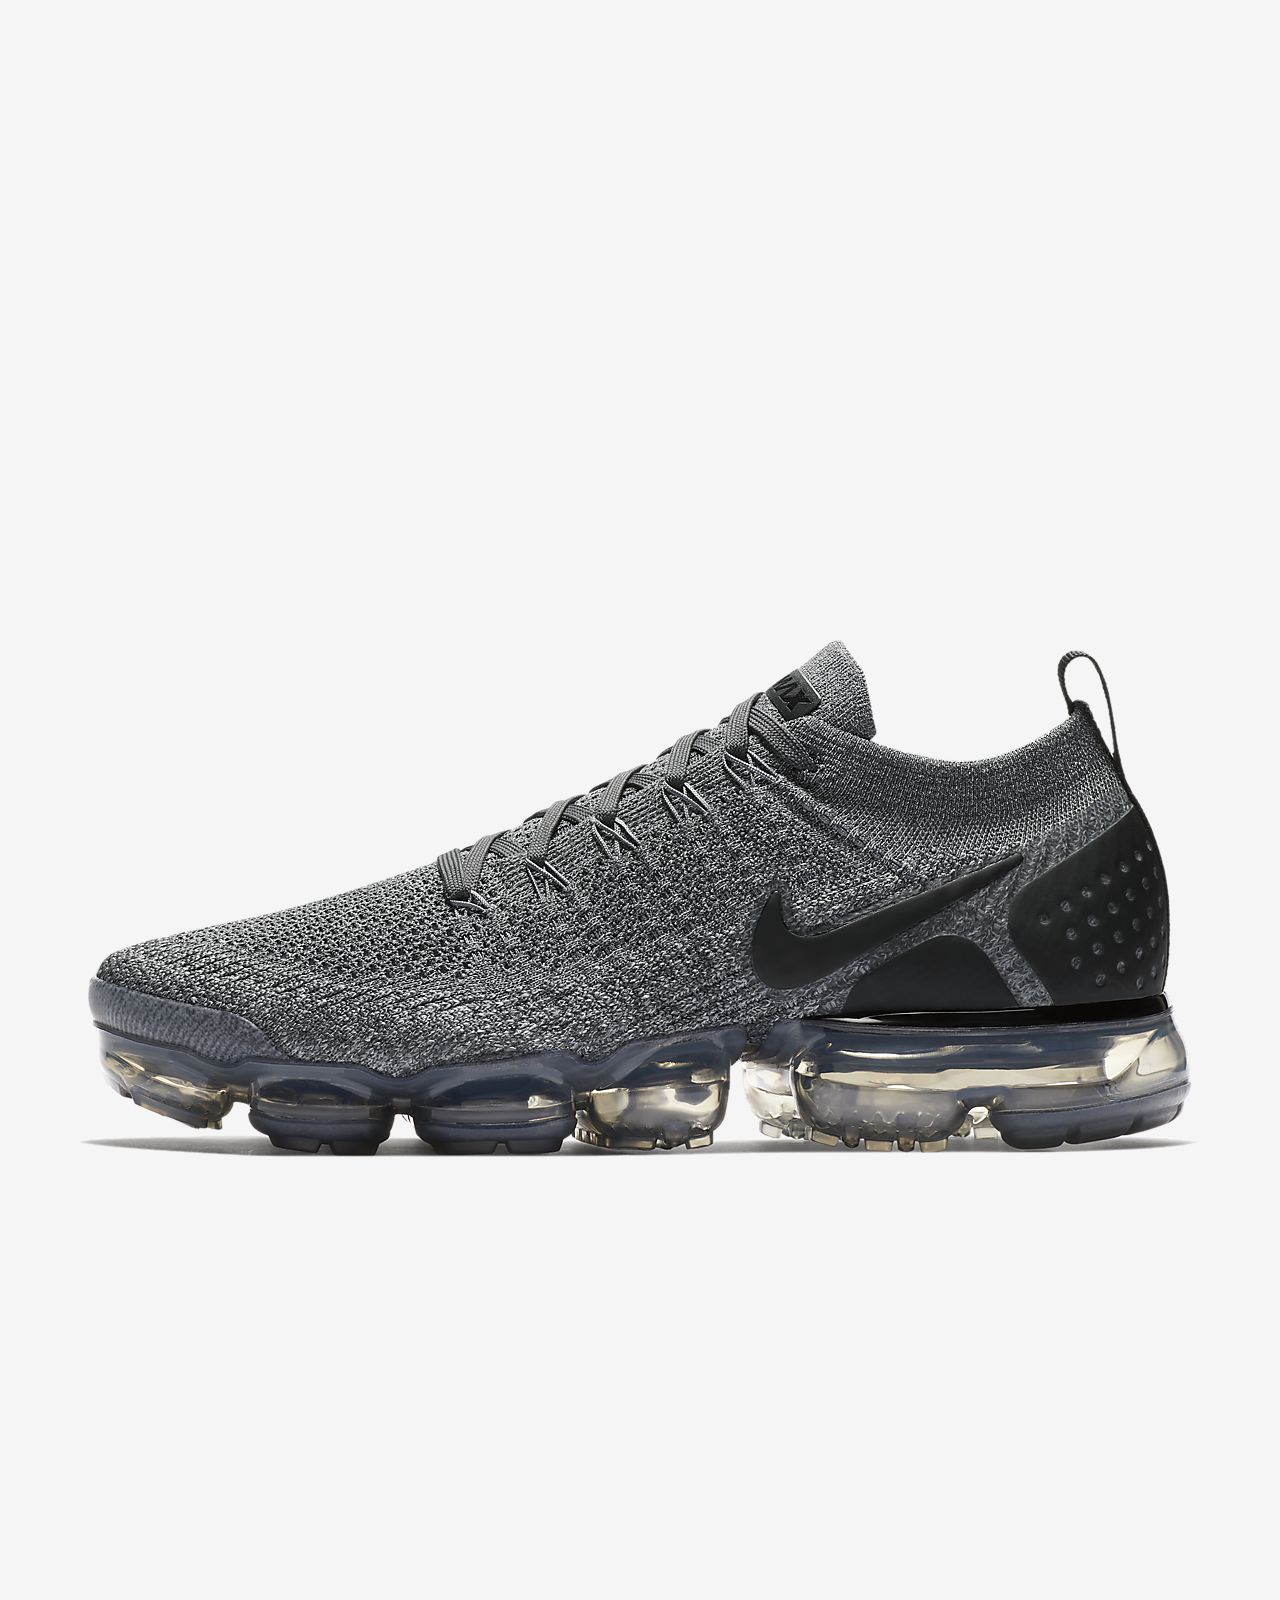 81bfb1f93d1 Men s Nike Air VaporMax Flyknit 2 Running Shoe Dark Grey Wolf Grey Black